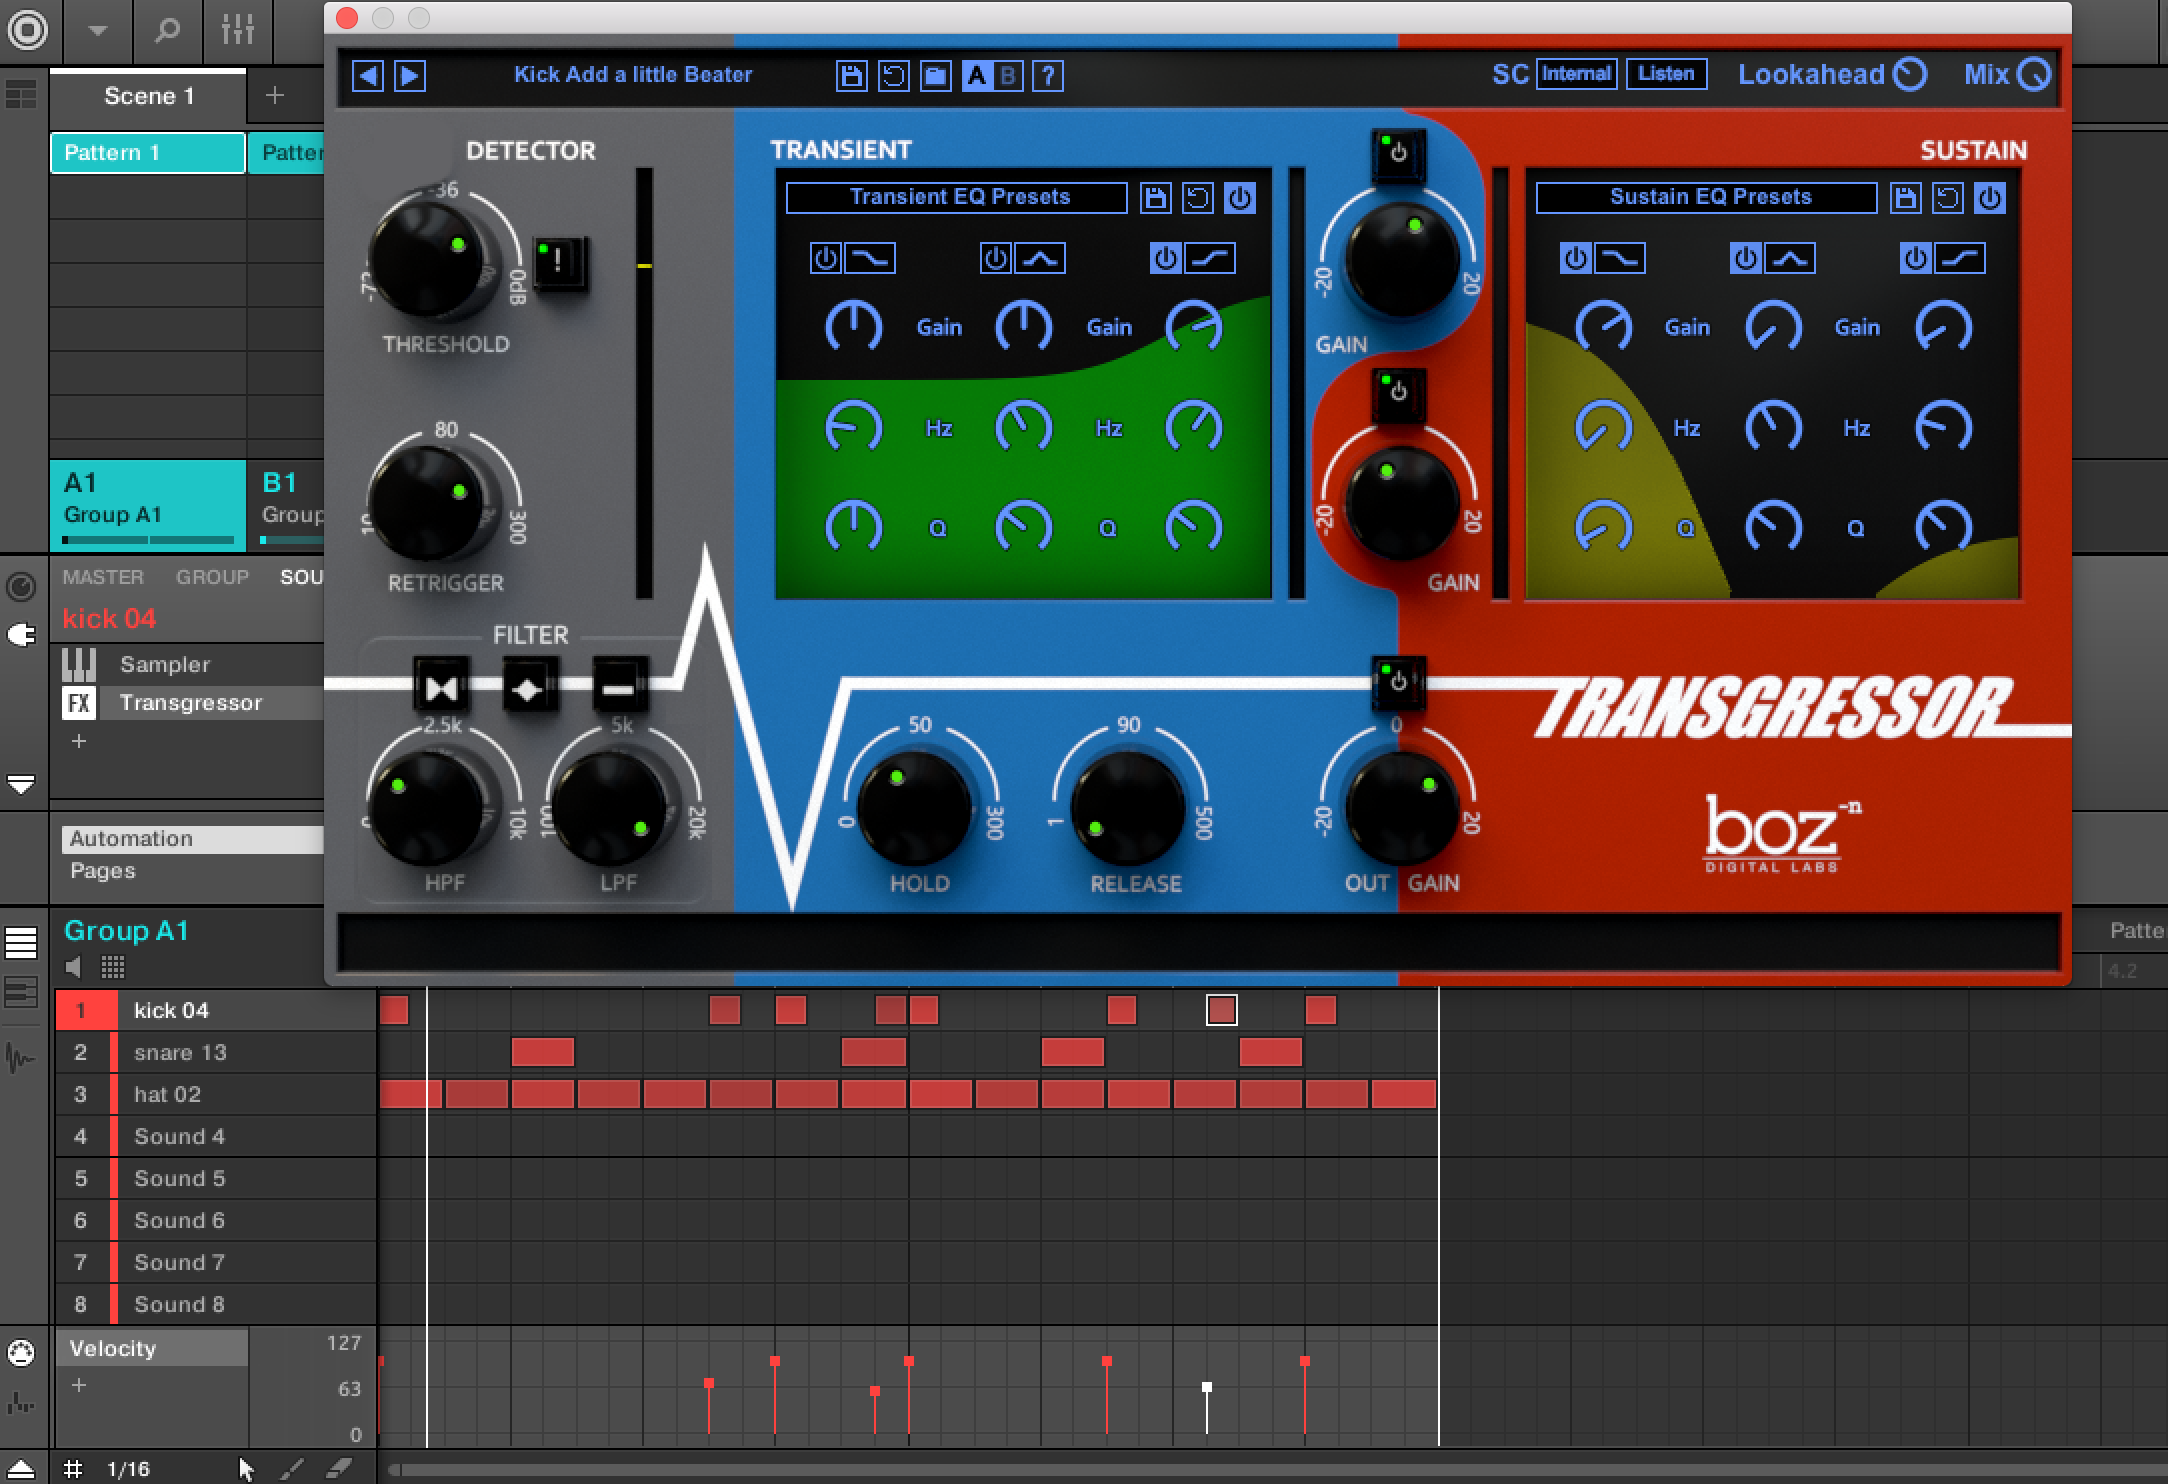 Boz Digital Labs Transgressor Review 3 Band Equalizer Control The Sustain Section Houses Same Controls And Eq As Aforementioned Transient